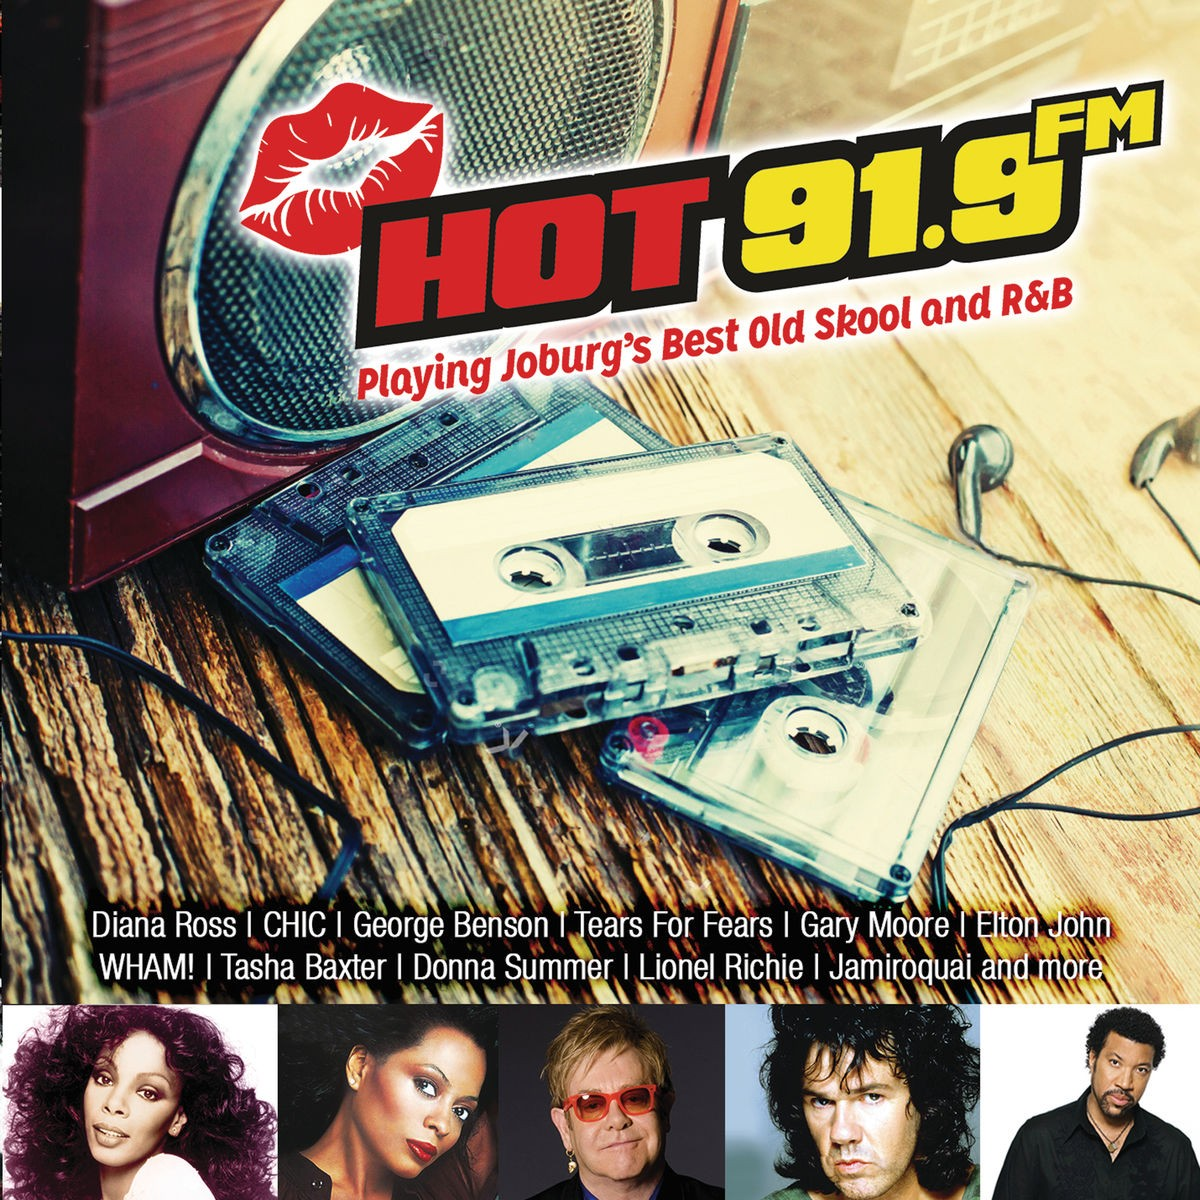 Hot 91.9 FM (Playing Joburg's Best Old Skool and R&B) CD - DARCD 3158